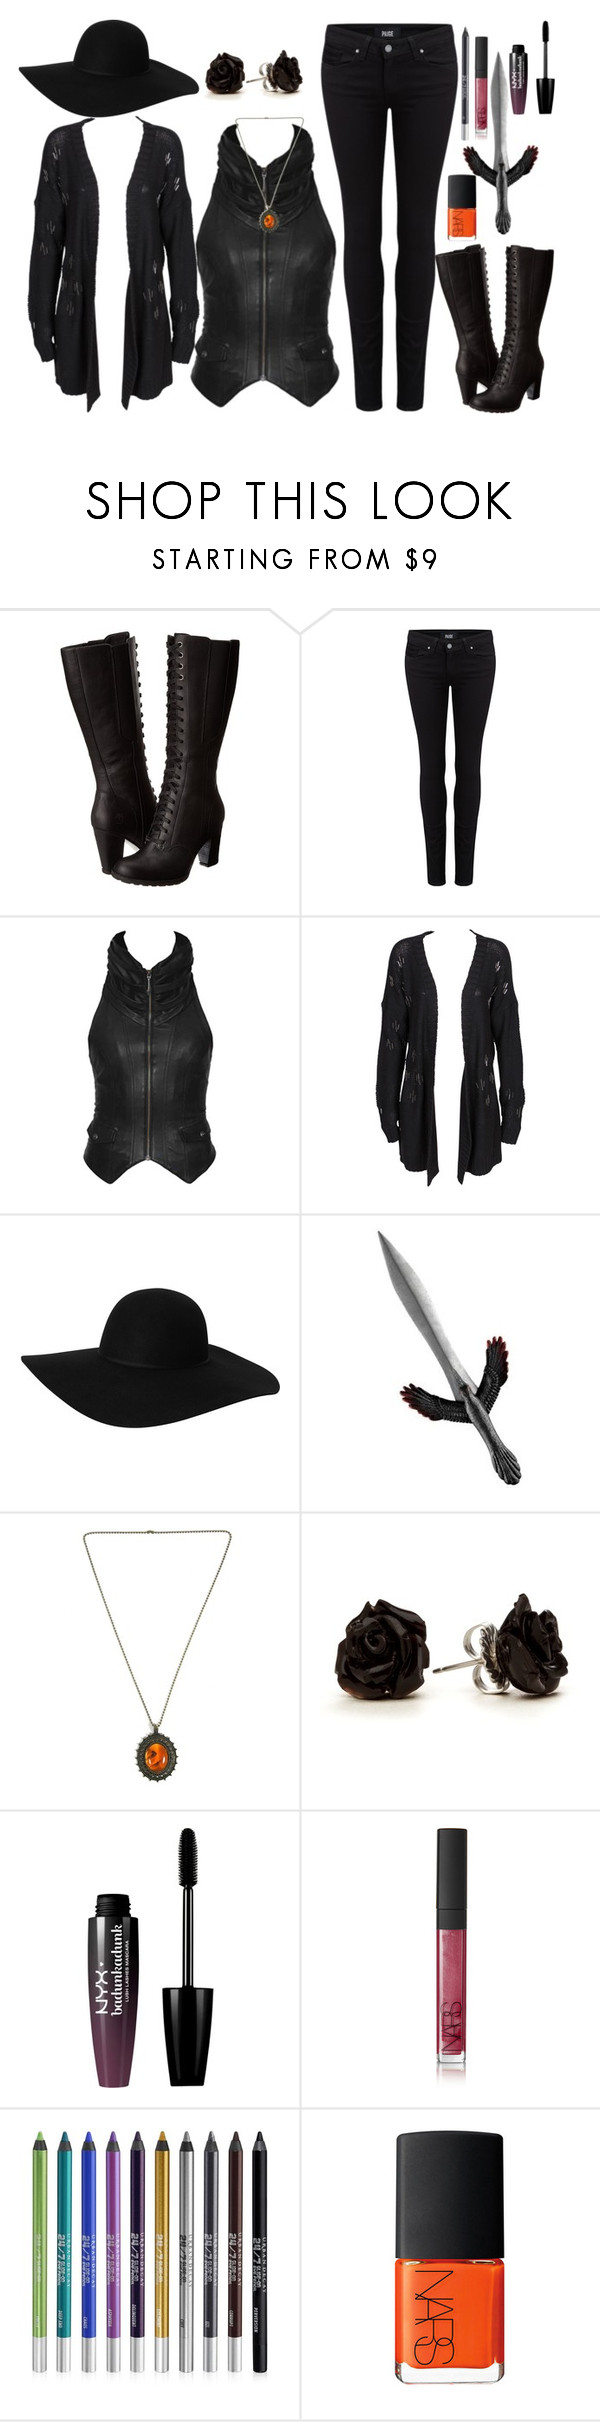 """Crow #9"" by travelcutie ❤ liked on Polyvore featuring Timberland, Paige Denim, One Teaspoon, Monki, Raven Denim, NYX, NARS Cosmetics and Urban Decay"